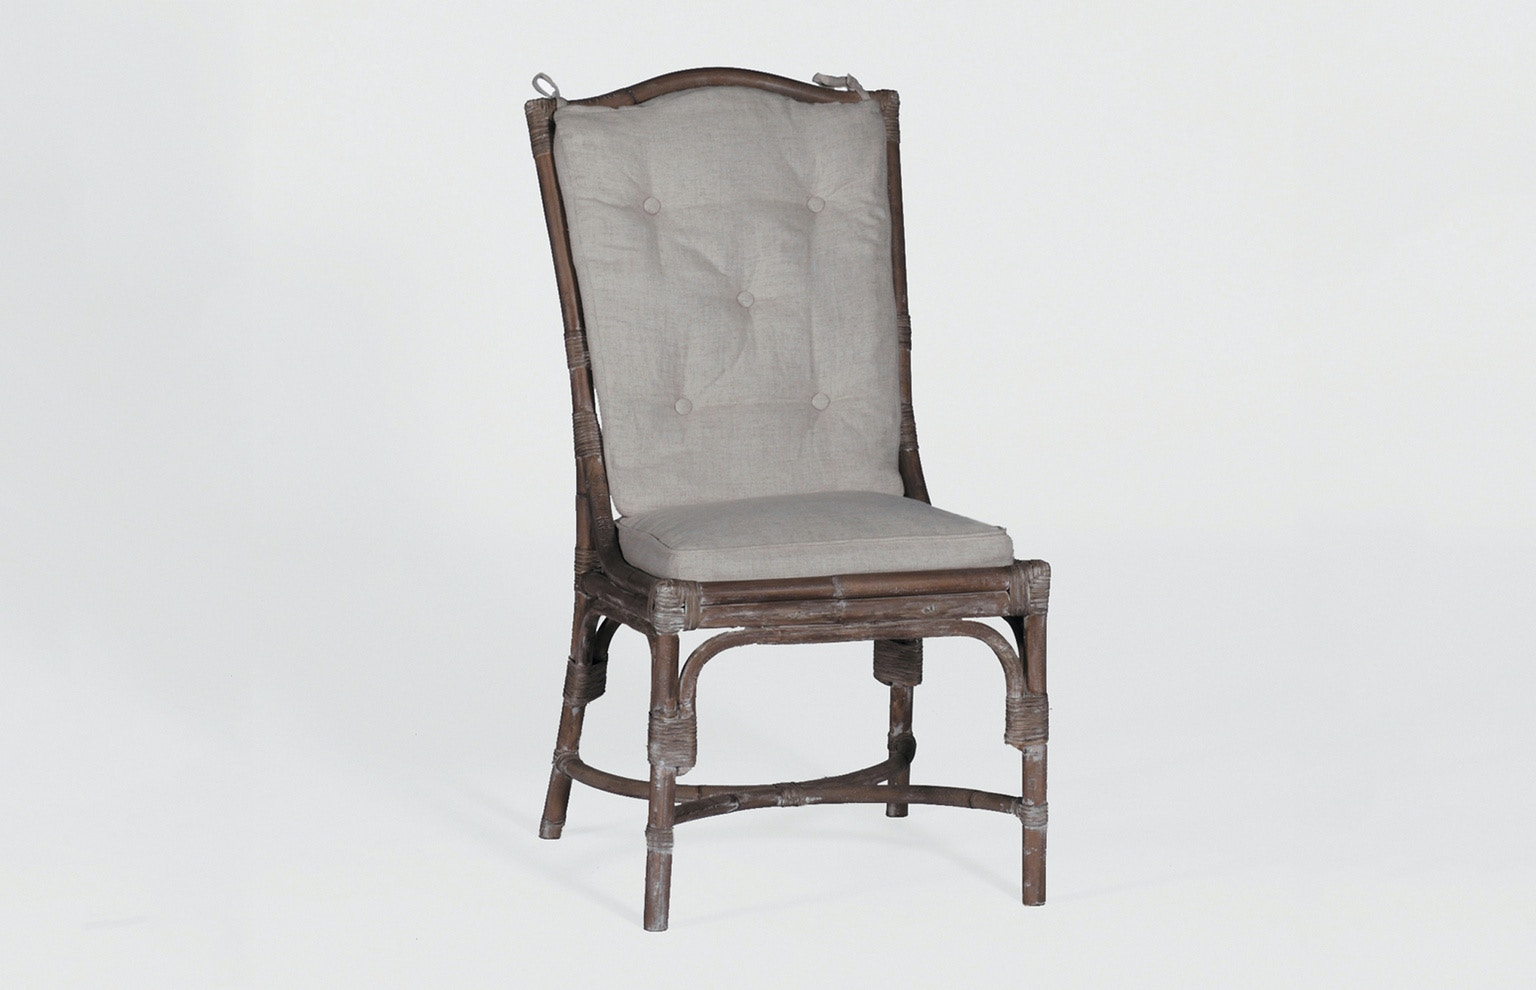 Julianau0027s Private Collection Dining Room Leslie Dining Chair SCH 150190 At  Julianau0027s Furniture Galleries